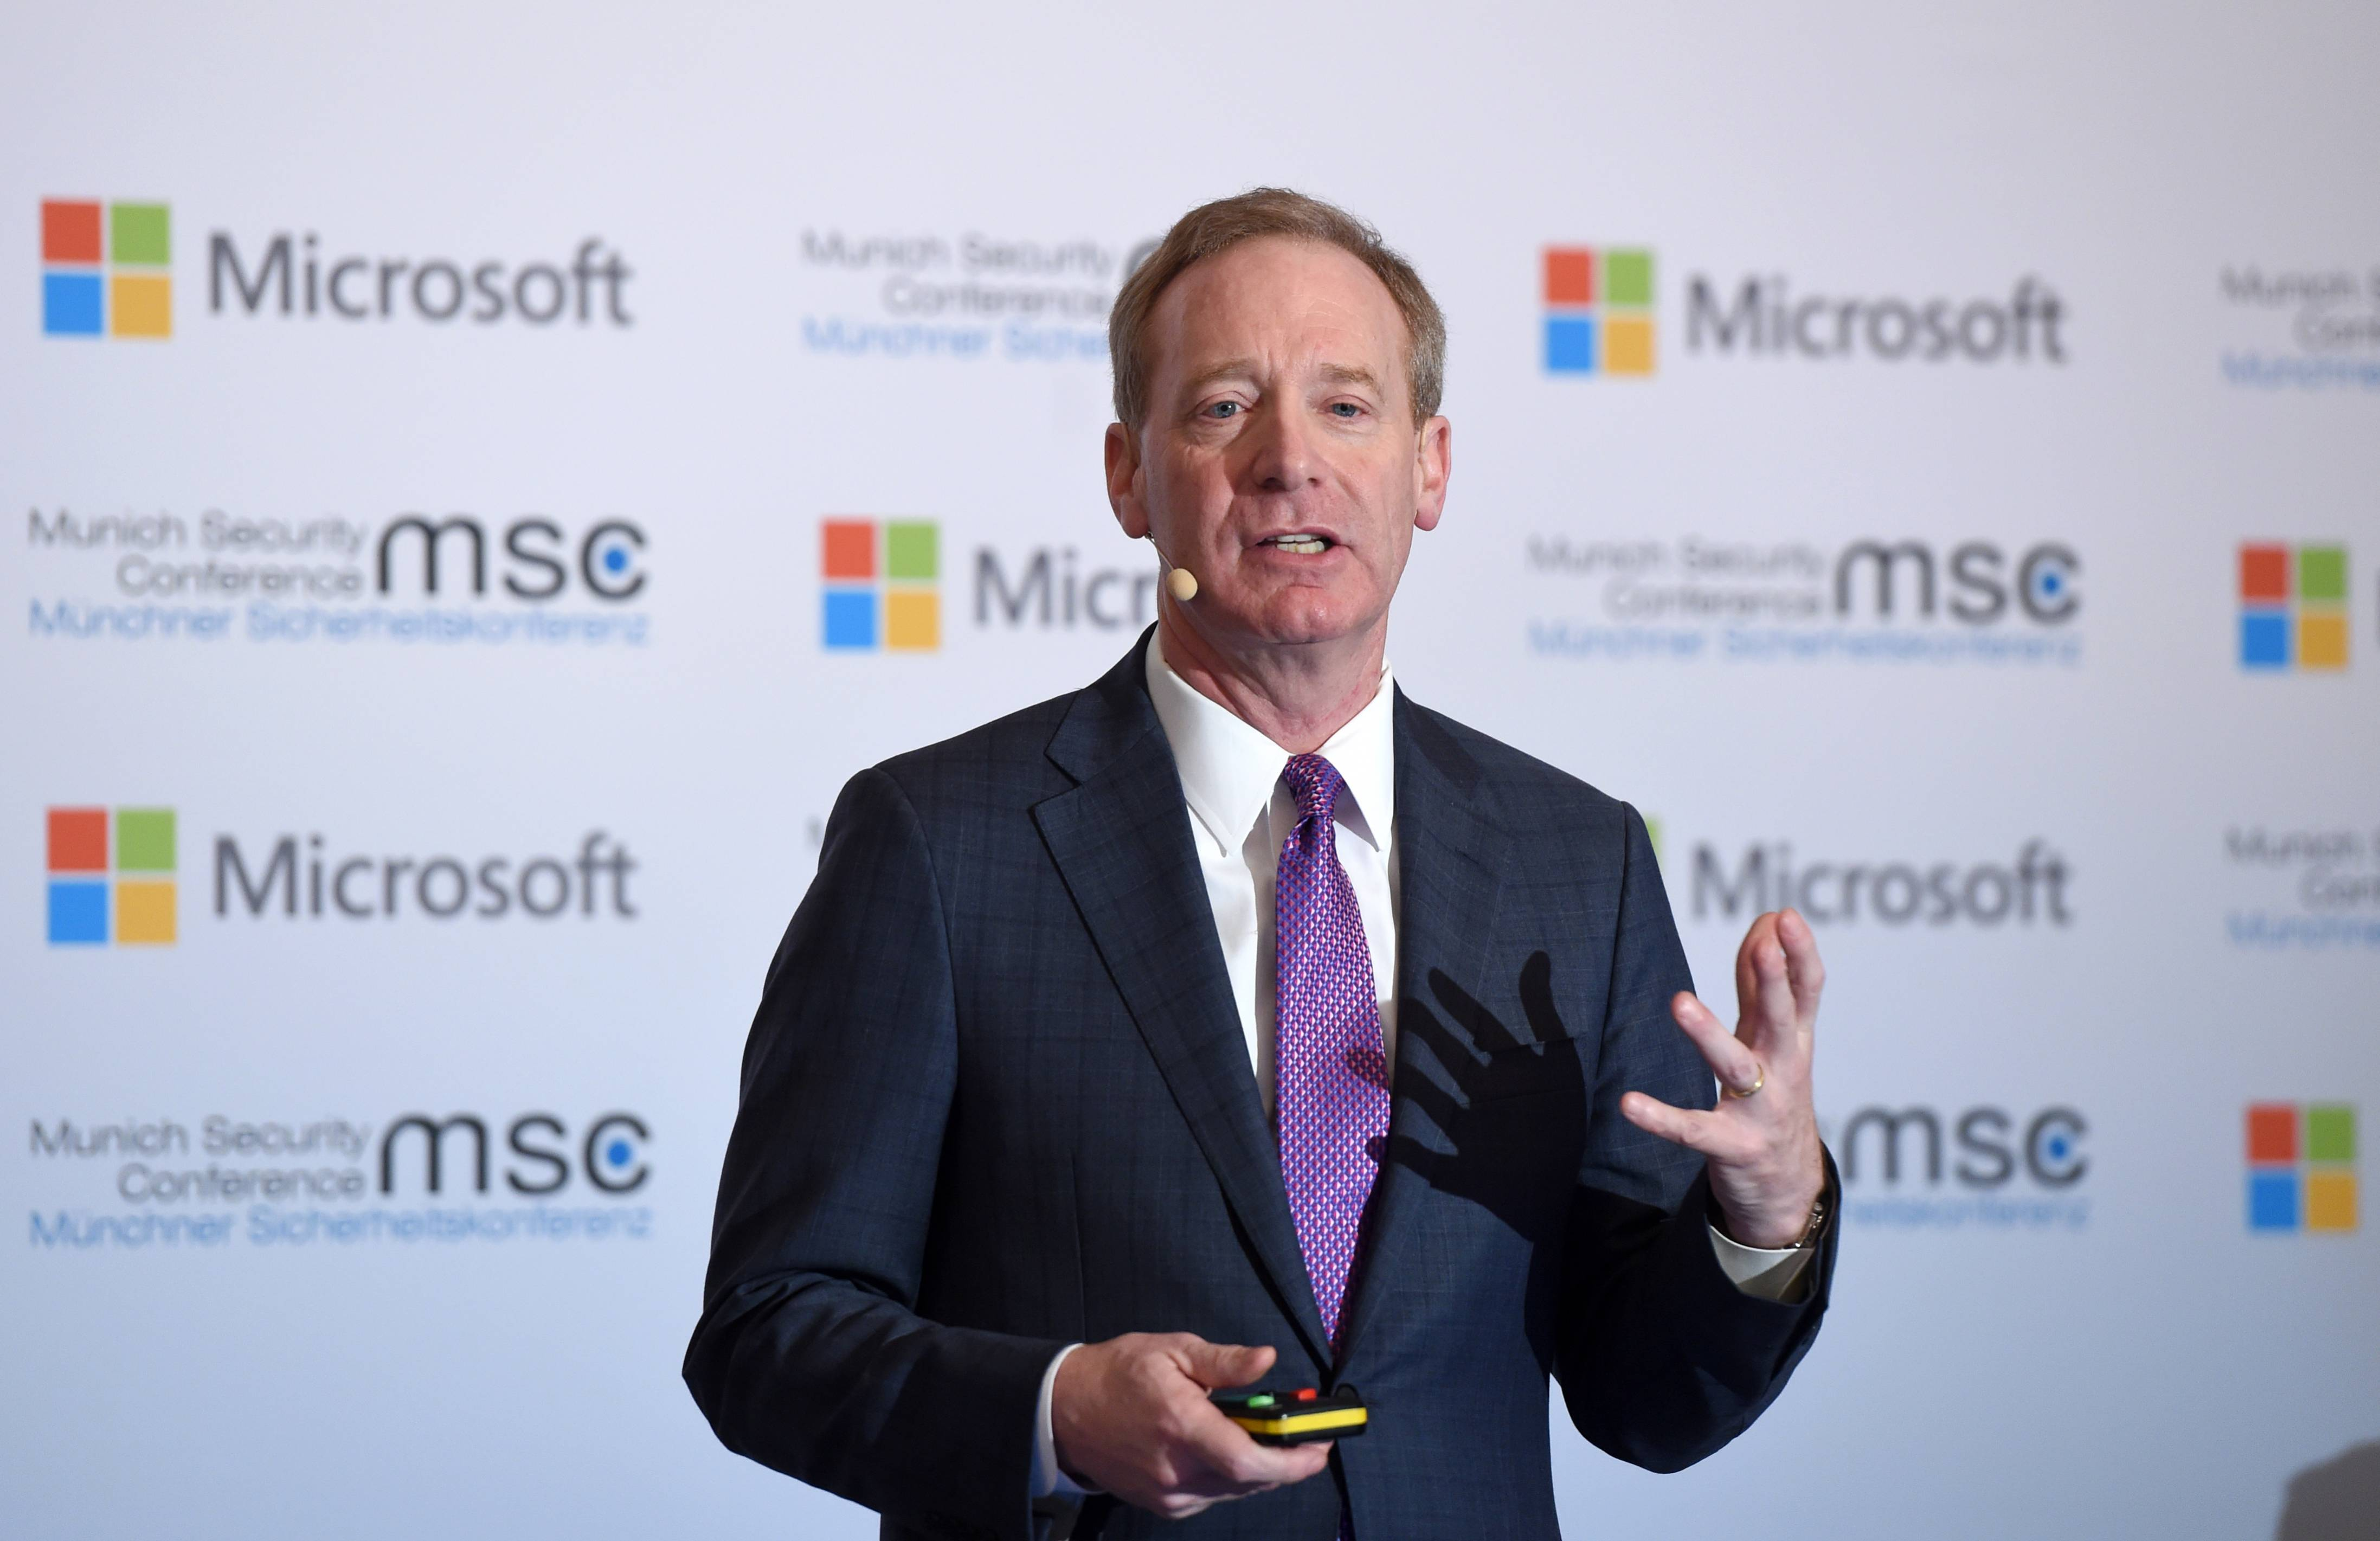 Microsoft President Brad Smith calls for government regulation of facial recognition technology.